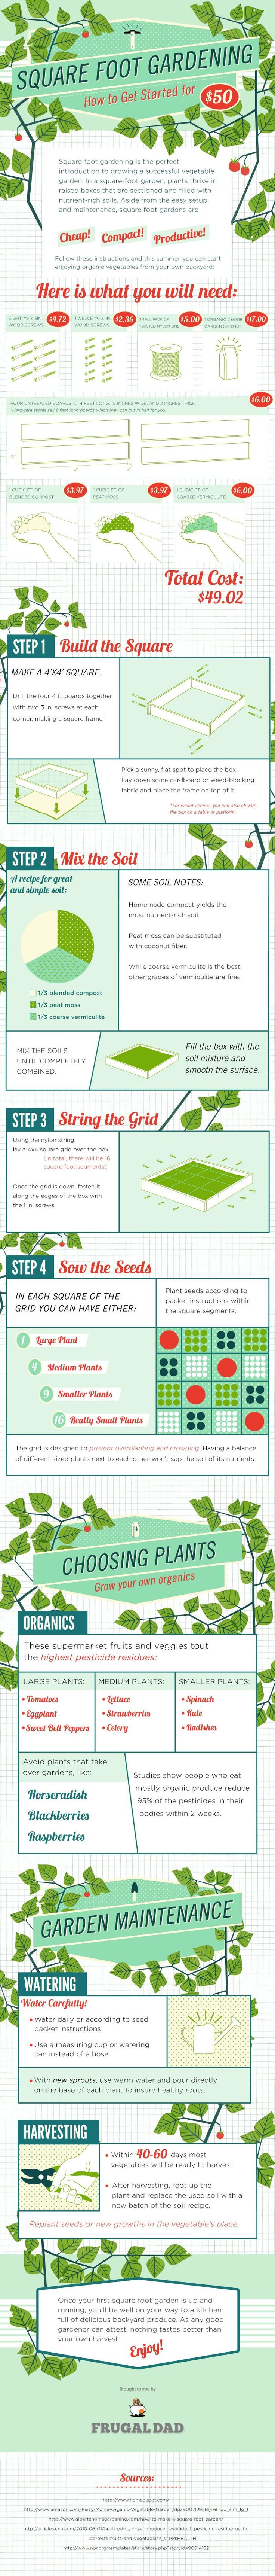 Infographic: Square Foot Gardening: How to Get Started for $50